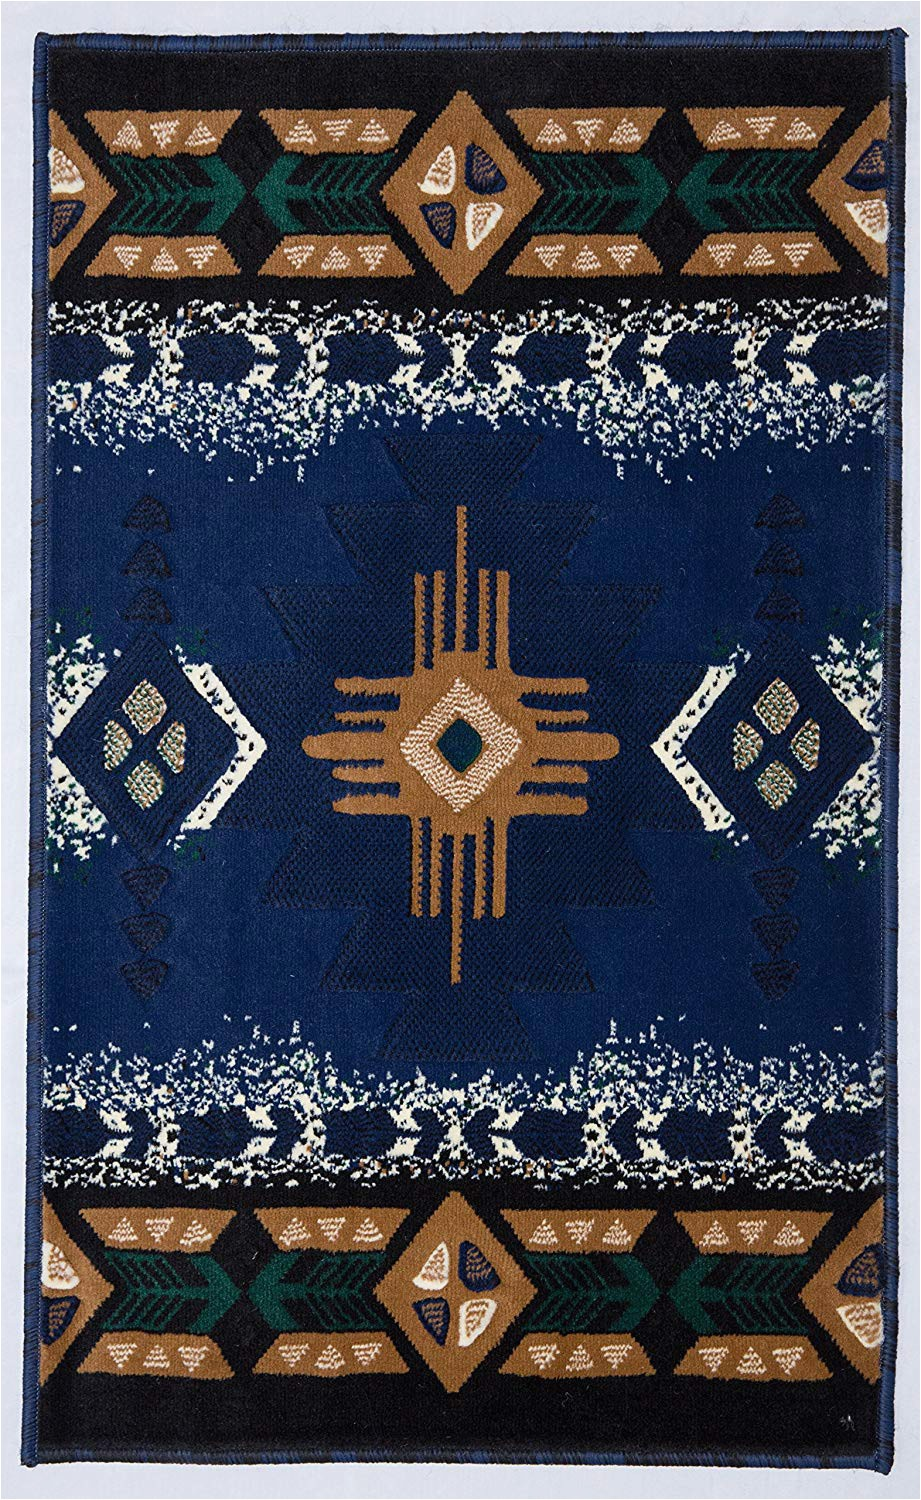 rugs 4 less collection southwest native american indian area rug design r4l 318 burgundy maroon 5 2 x7 2